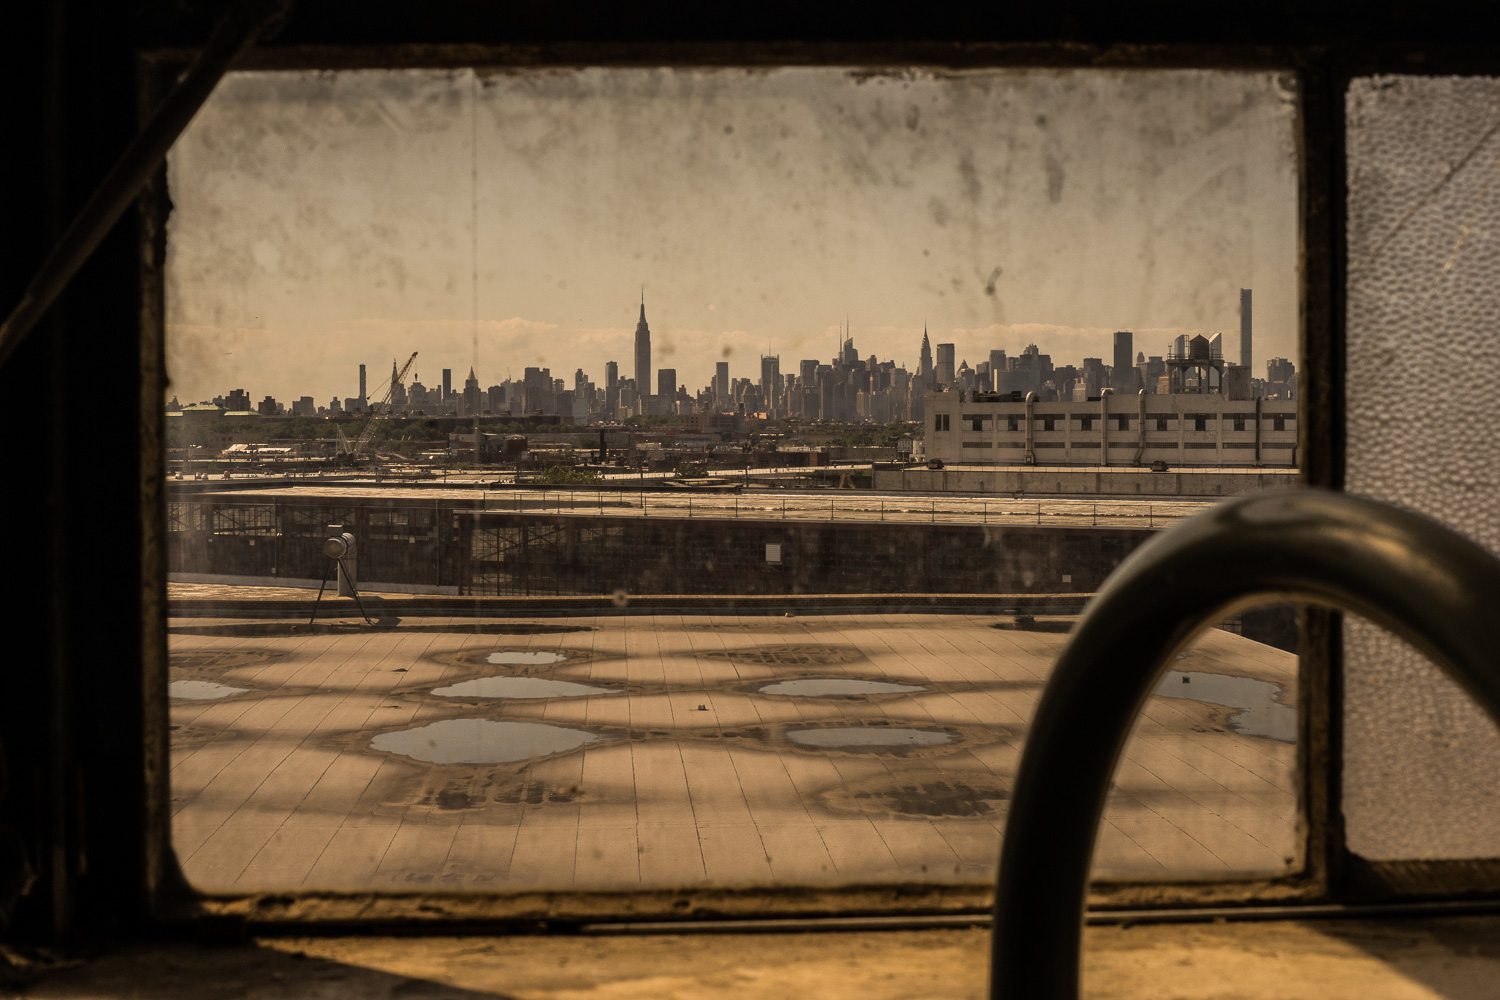 """Manhattan's skyline is visible in the distance. Increasingly,new people are moving to Bedstuy, changing a traditionally African-American demography. As rents rise,families move from the area further into Brooklyn. """"You know man, change is coming"""", Nate Boyd says. It's time again for Bedstuy boxing to 'do' rather than 'die'."""